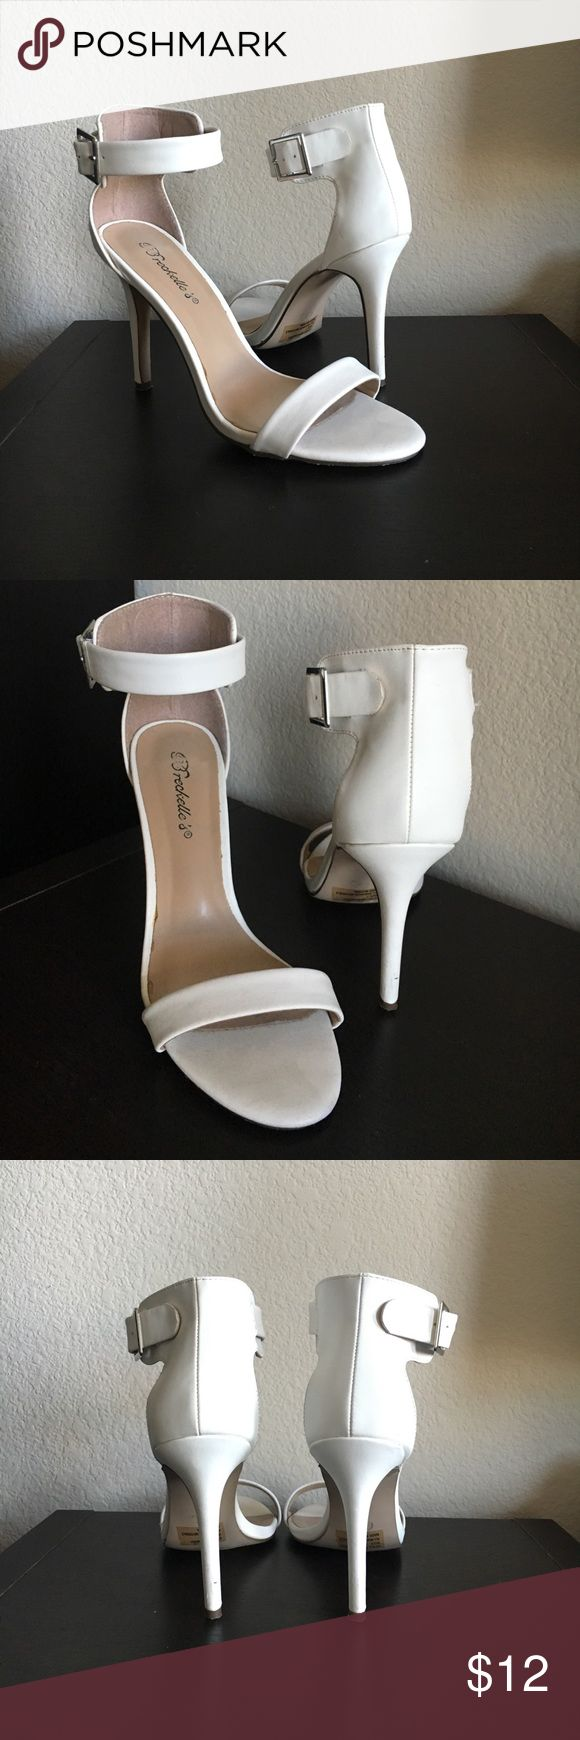 White Strappy High Heels White faux leather Strappy High Heels with belt buckle closure - Breckelle's® brand in US Women's size 7 Breckelles Shoes Heels